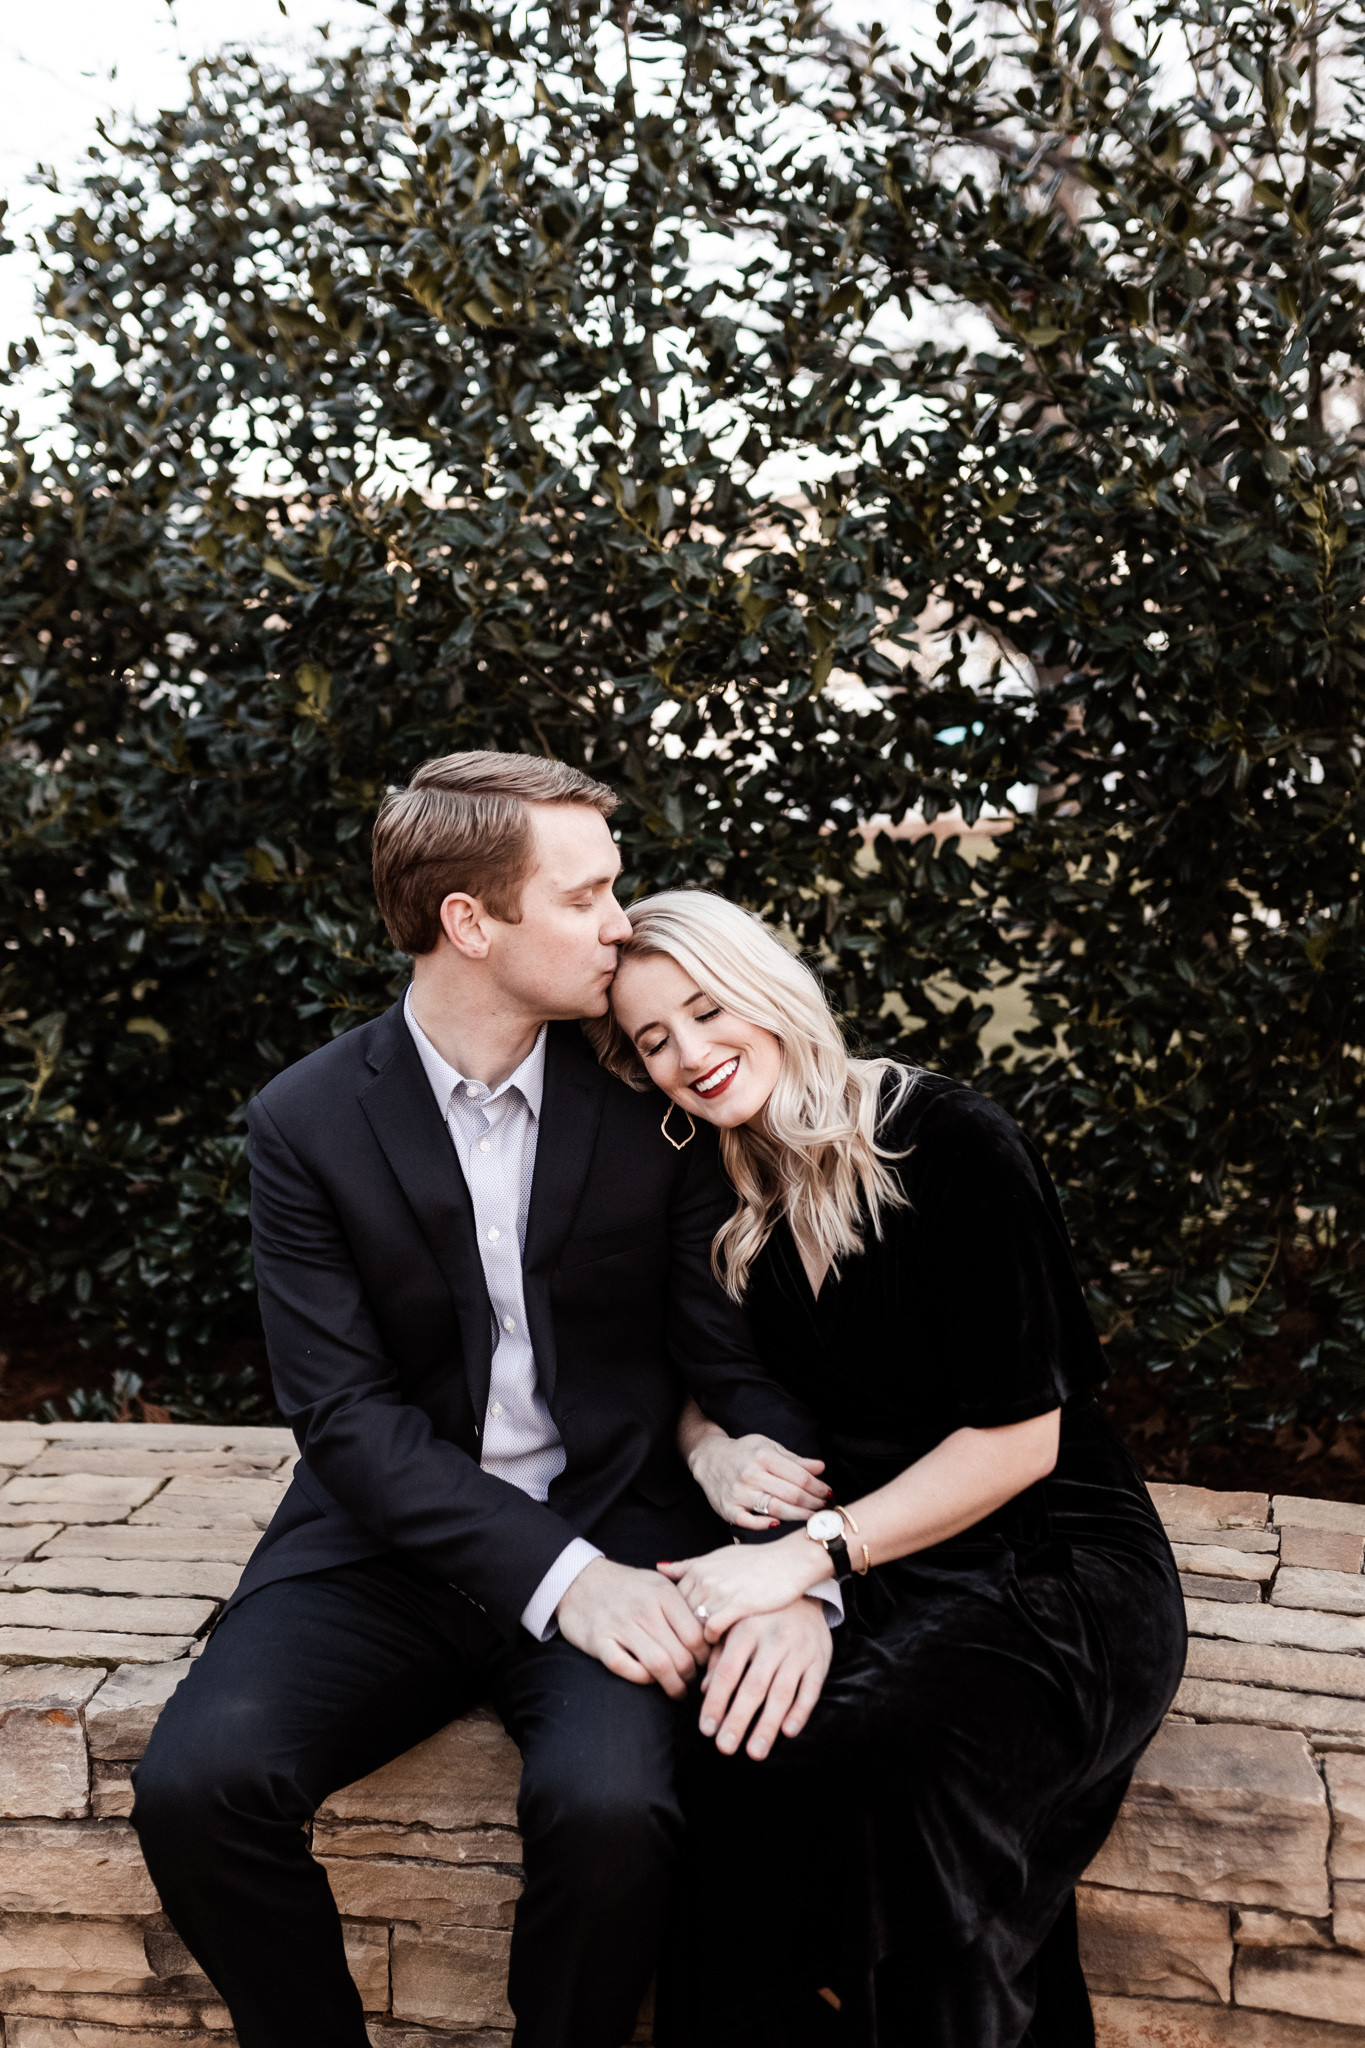 Foster + Alexa | Spring Garden Engagements | Oklahoma Wedding Photographer-53.jpg